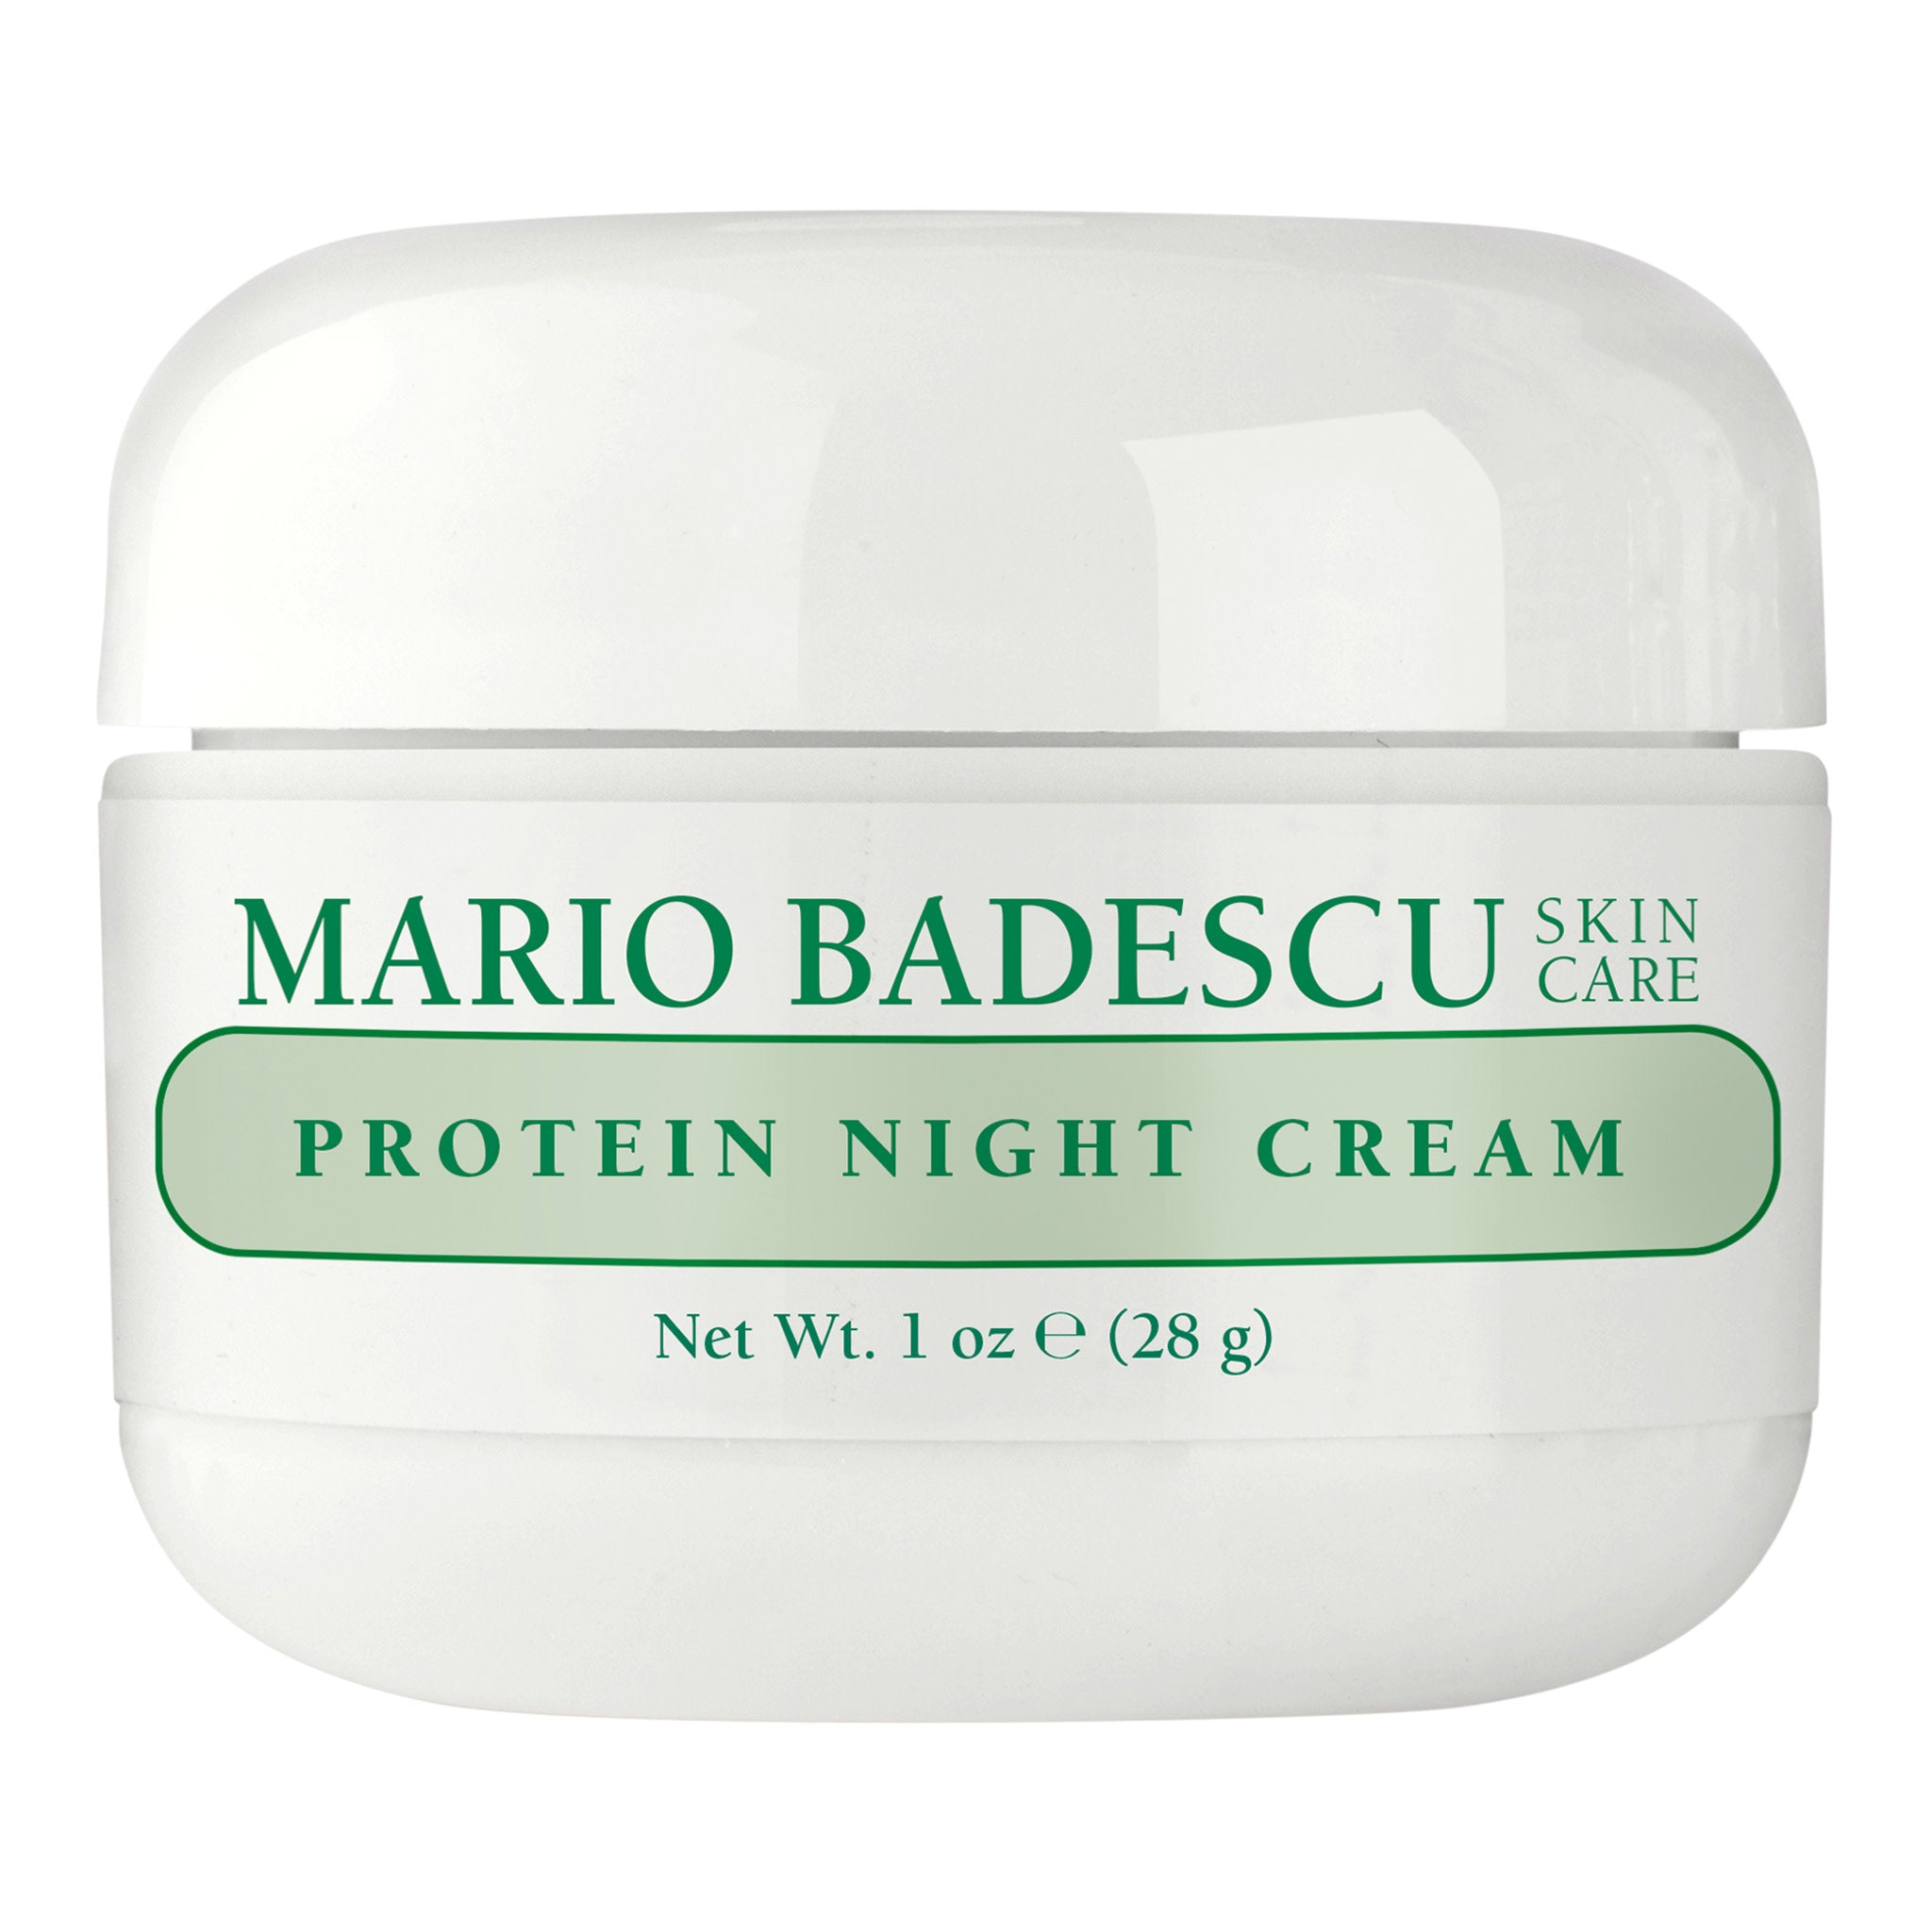 Protein Night Cream